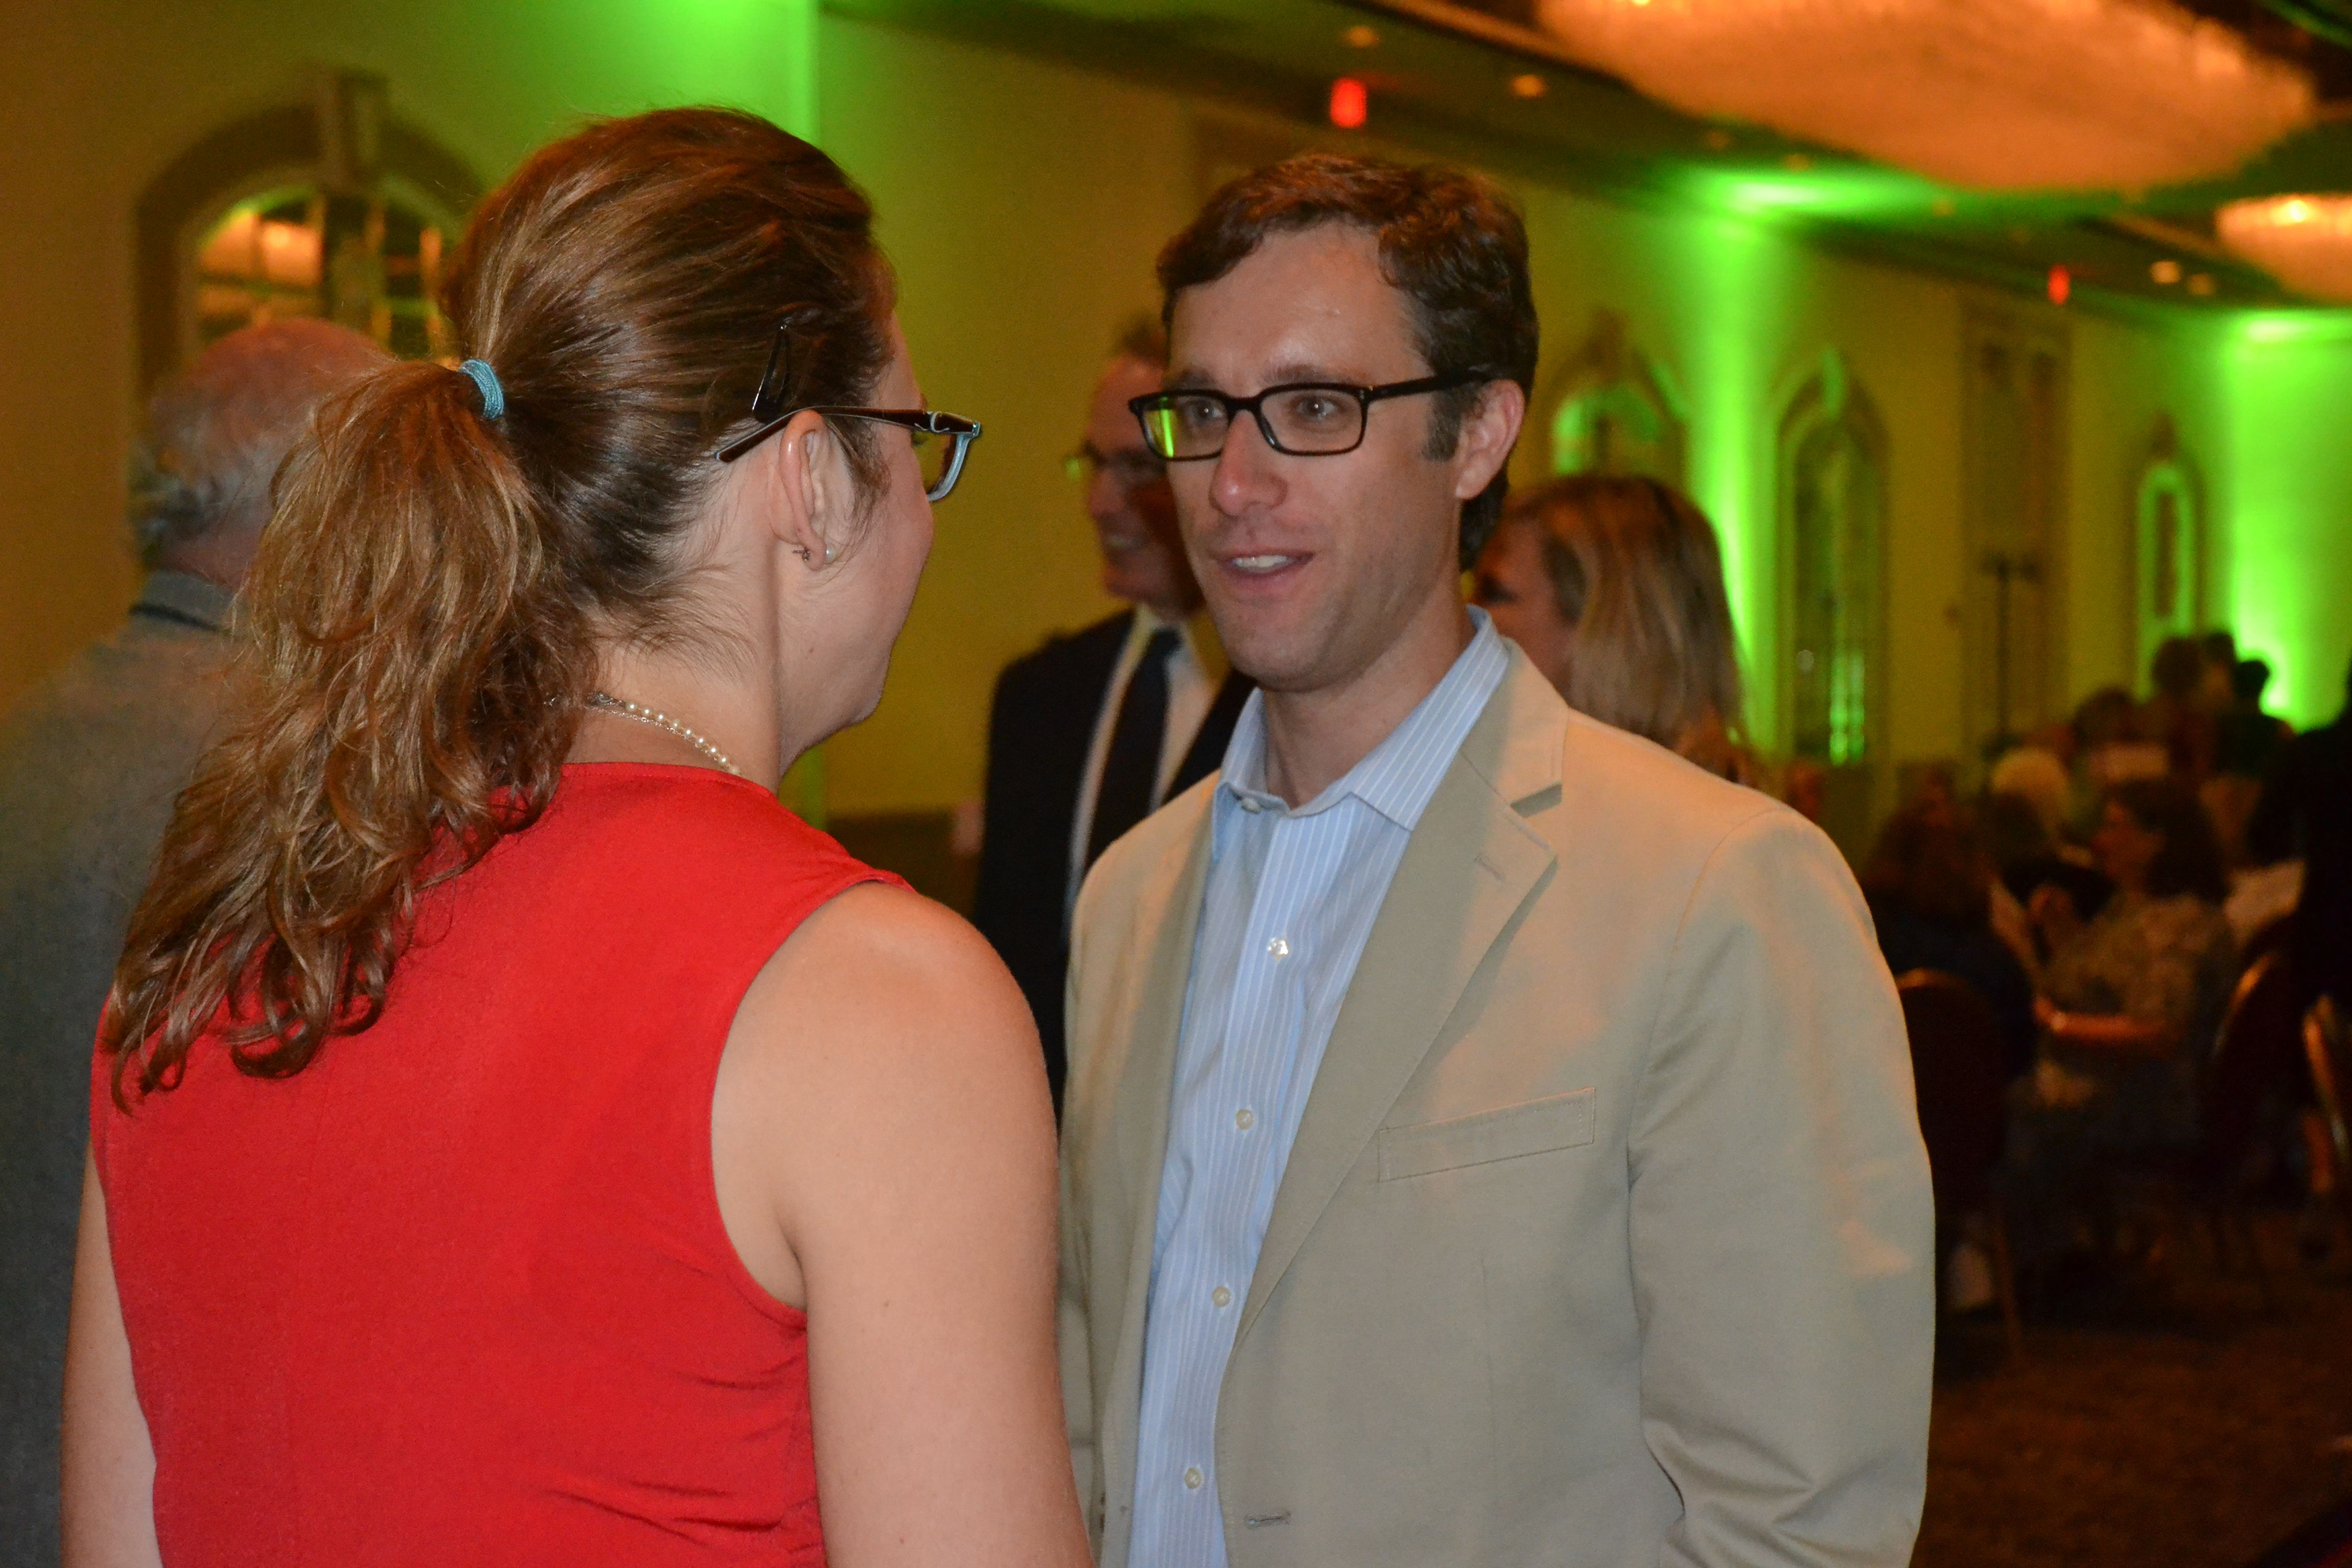 Brian Paschal, executive director of Tulsa's Young Professionals and The Forge, mingles with a guest at the 2013 Women of Distinction Awards dinner